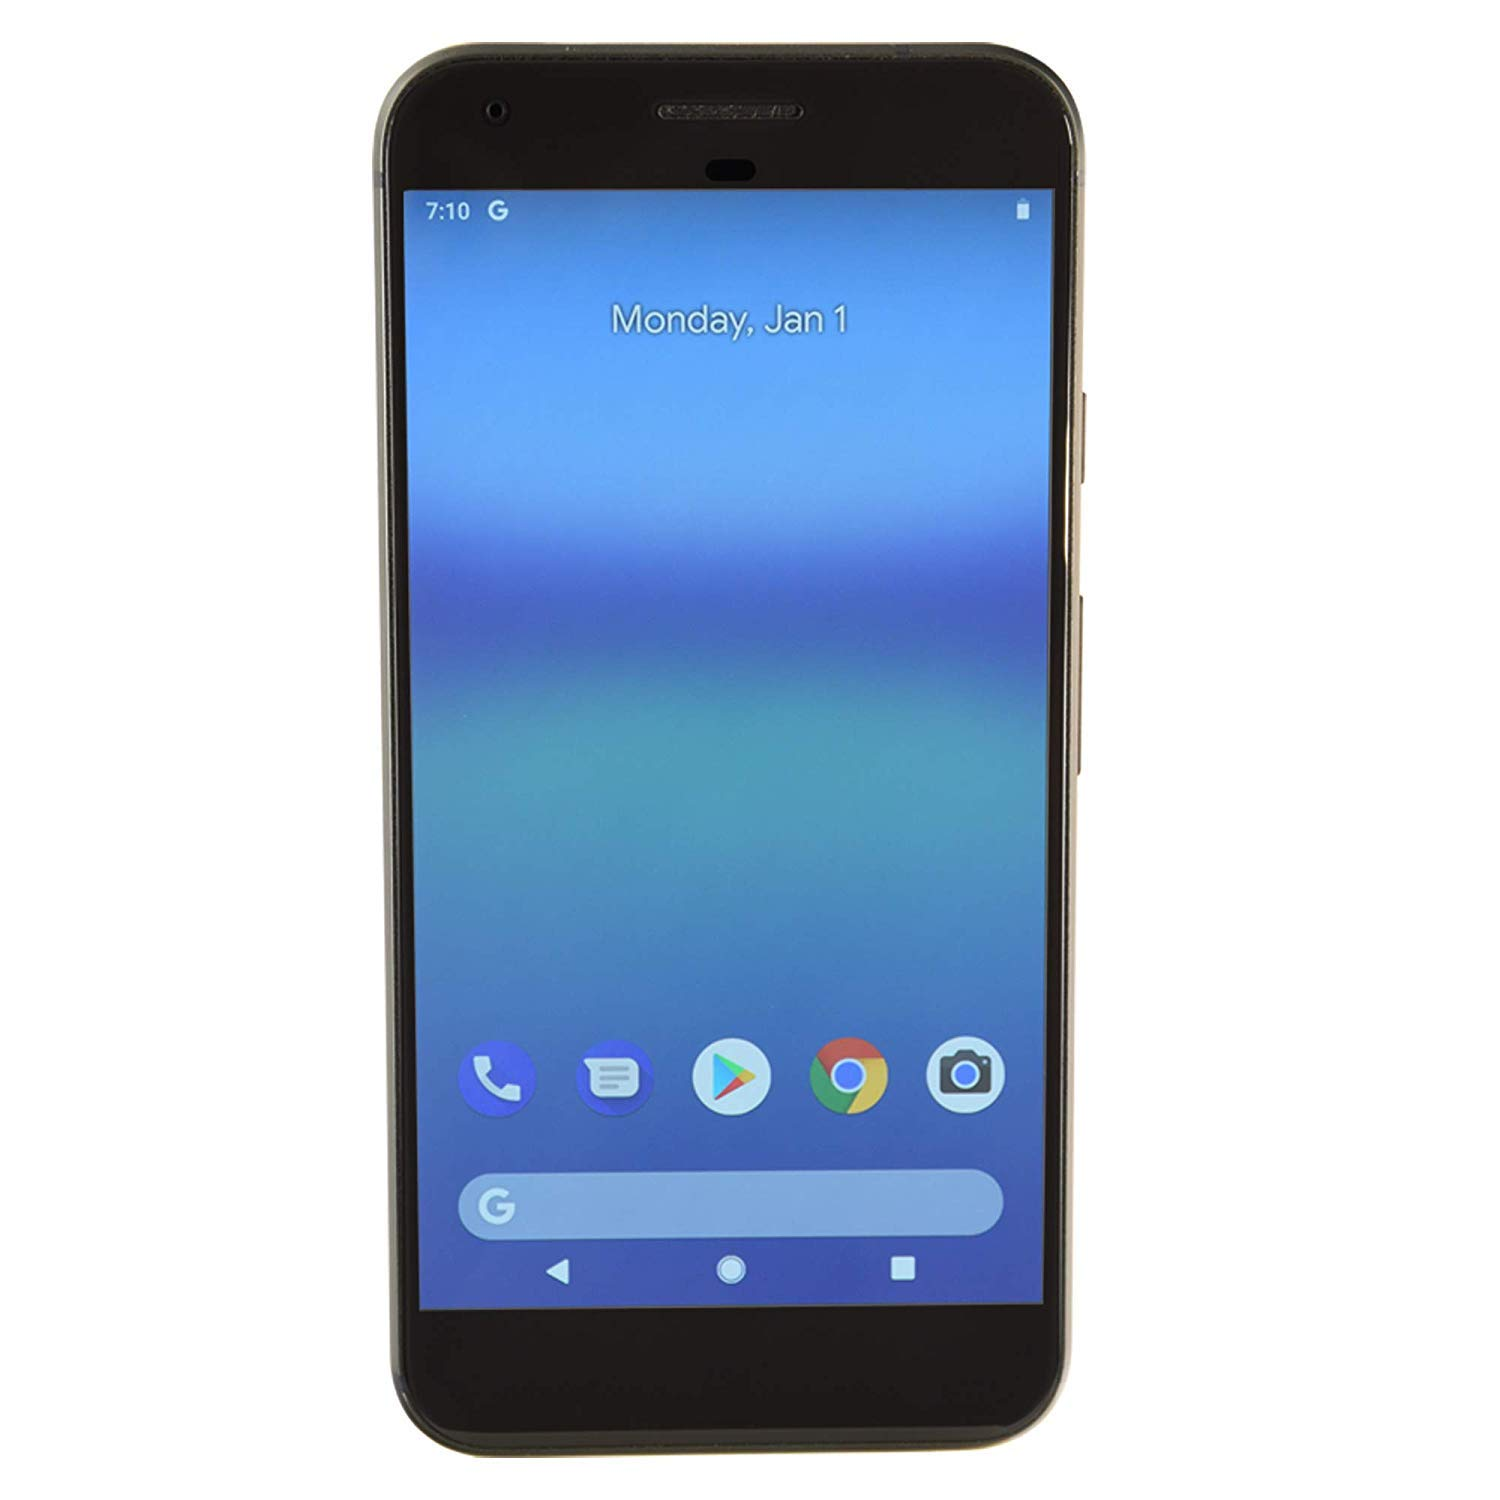 Google Pixel XL 128GB Unlocked GSM Phone w/ 12.3MP Camera - Quite Black by PIXEL